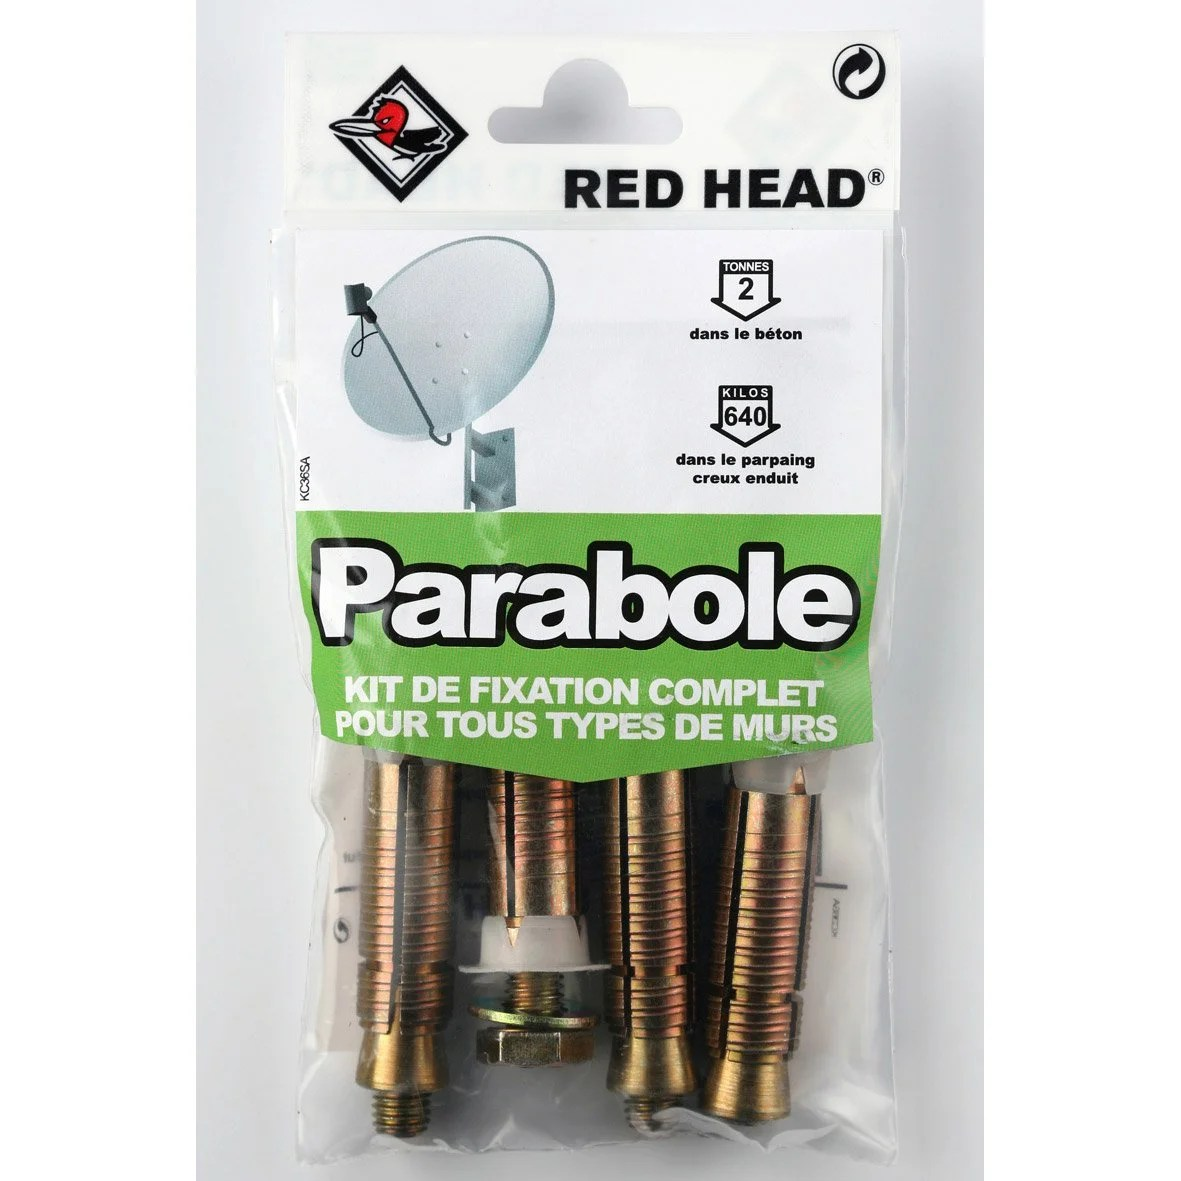 Fixation Parabole Leroy Merlin Kit Chevilles à Expansion Parabole Red Head Diam 16 X L